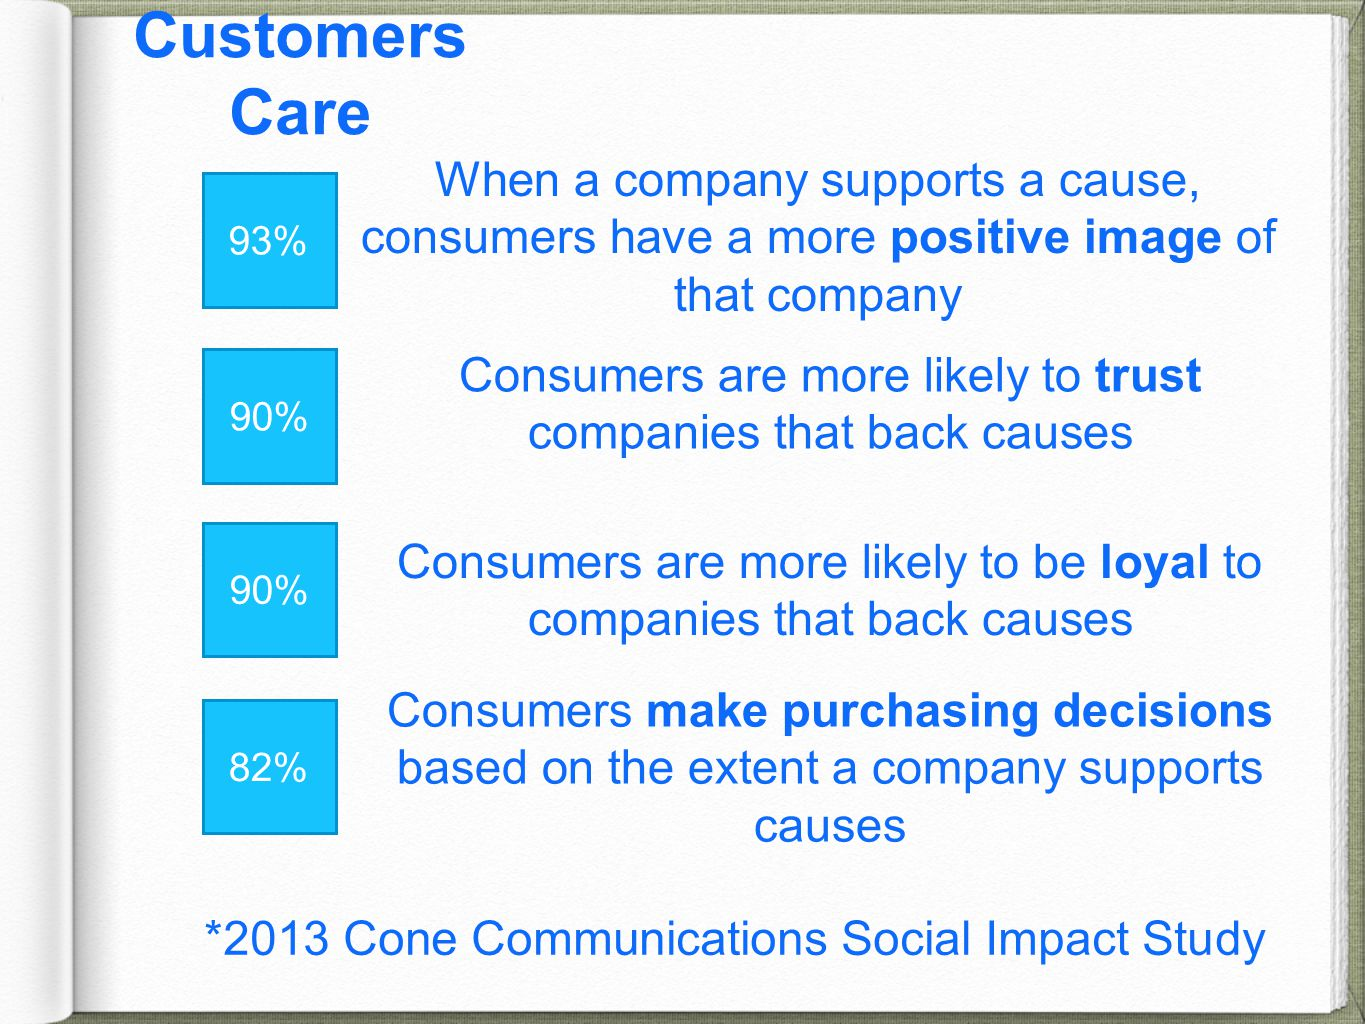 Customers Care *2013 Cone Communications Social Impact Study 93% When a company supports a cause, consumers have a more positive image of that company 90% Consumers are more likely to trust companies that back causes Consumers are more likely to be loyal to companies that back causes 82% Consumers make purchasing decisions based on the extent a company supports causes